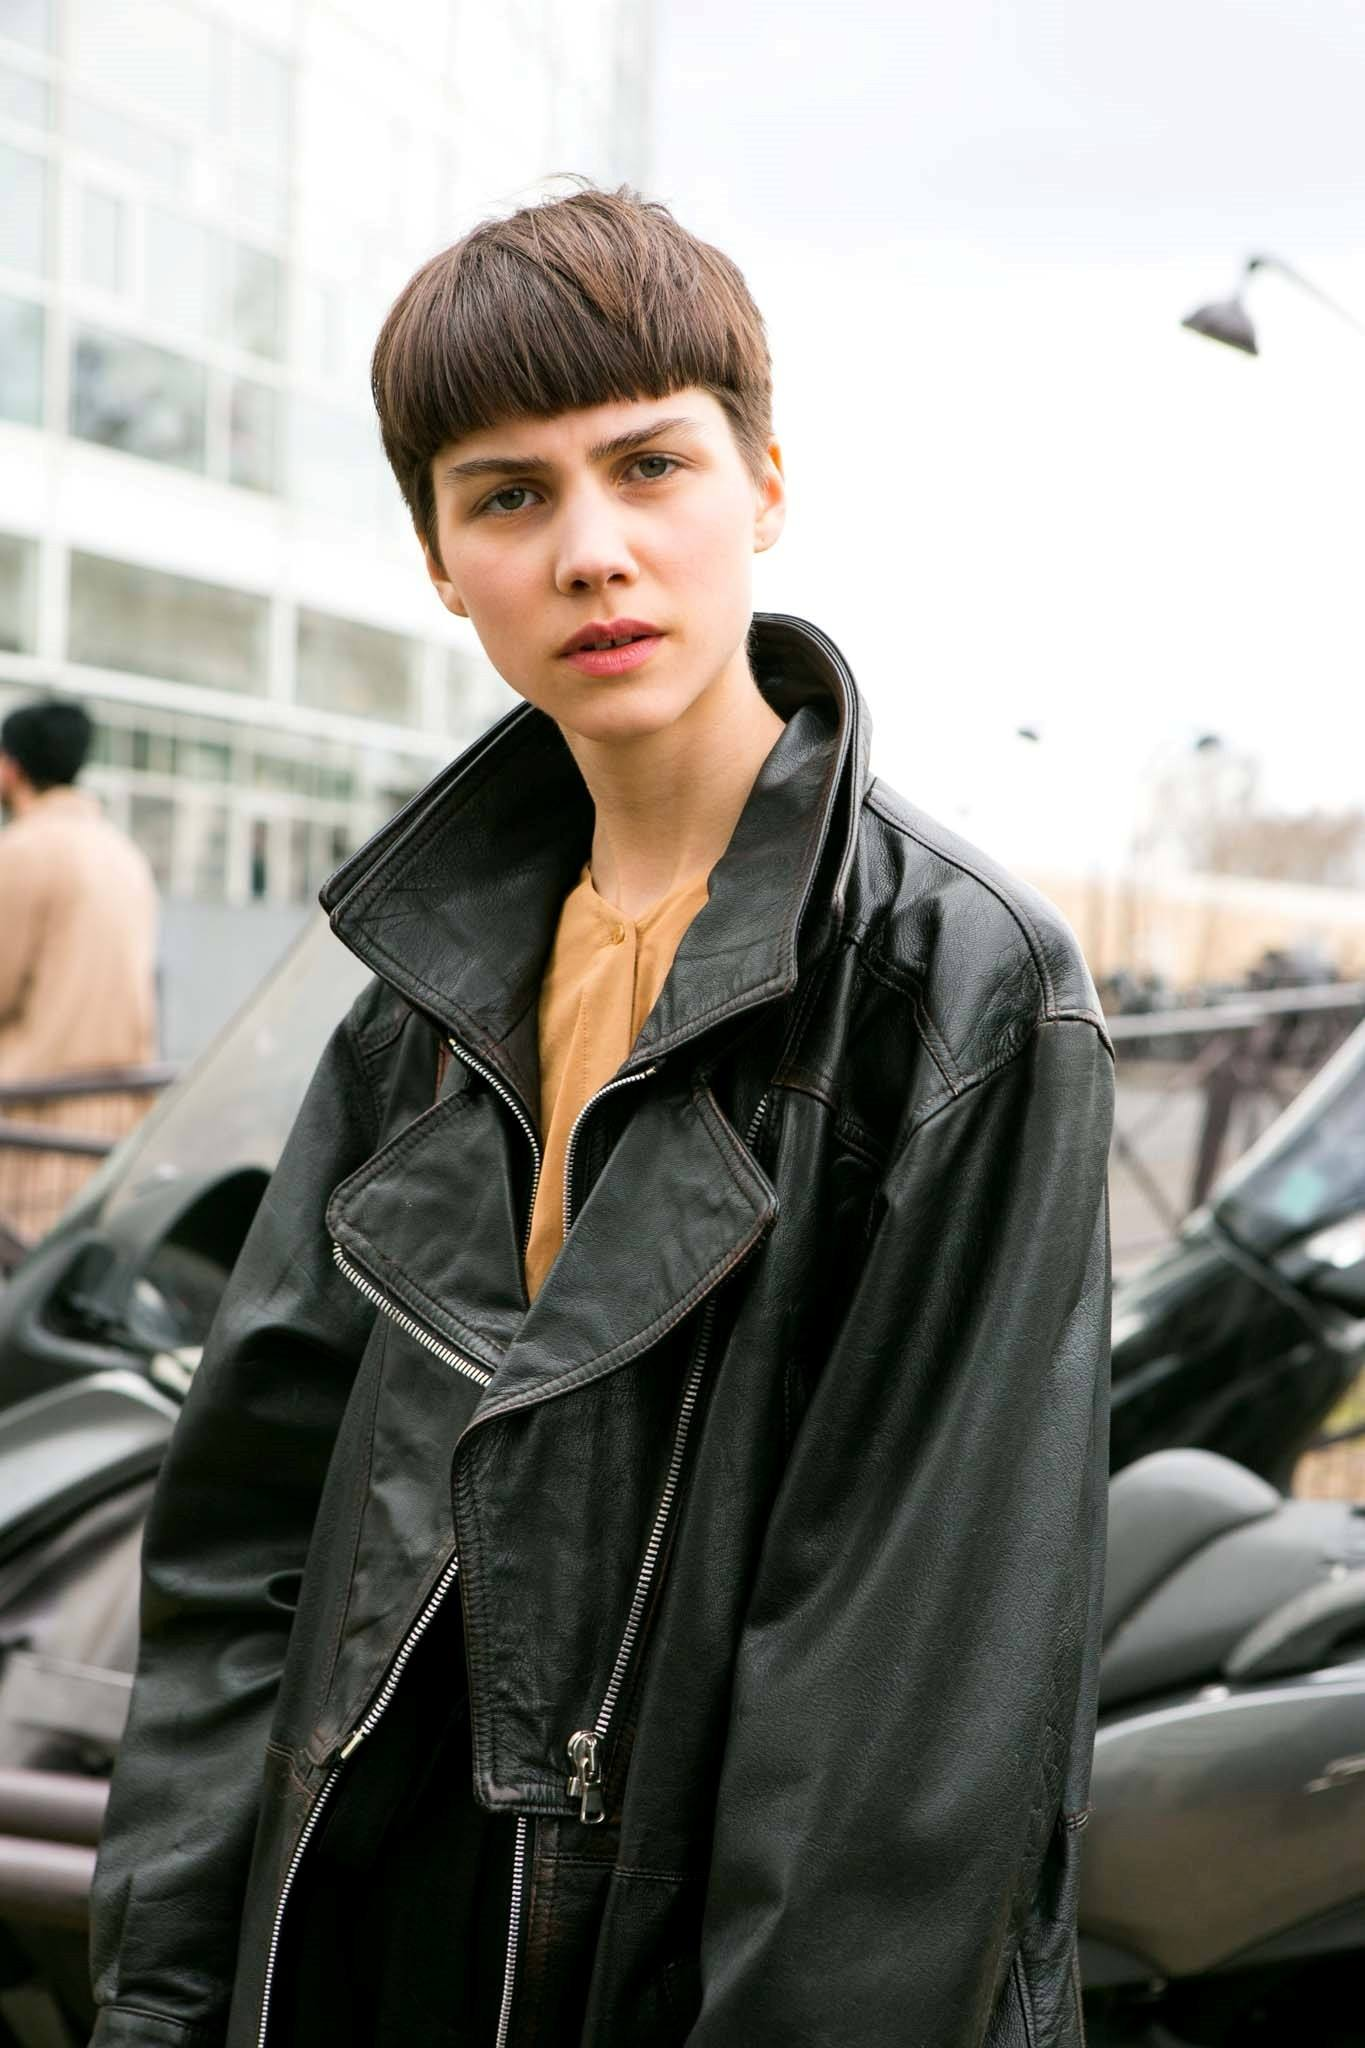 Caucasian woman with dark brown bowl cut hair wearing a black jacket outdoors